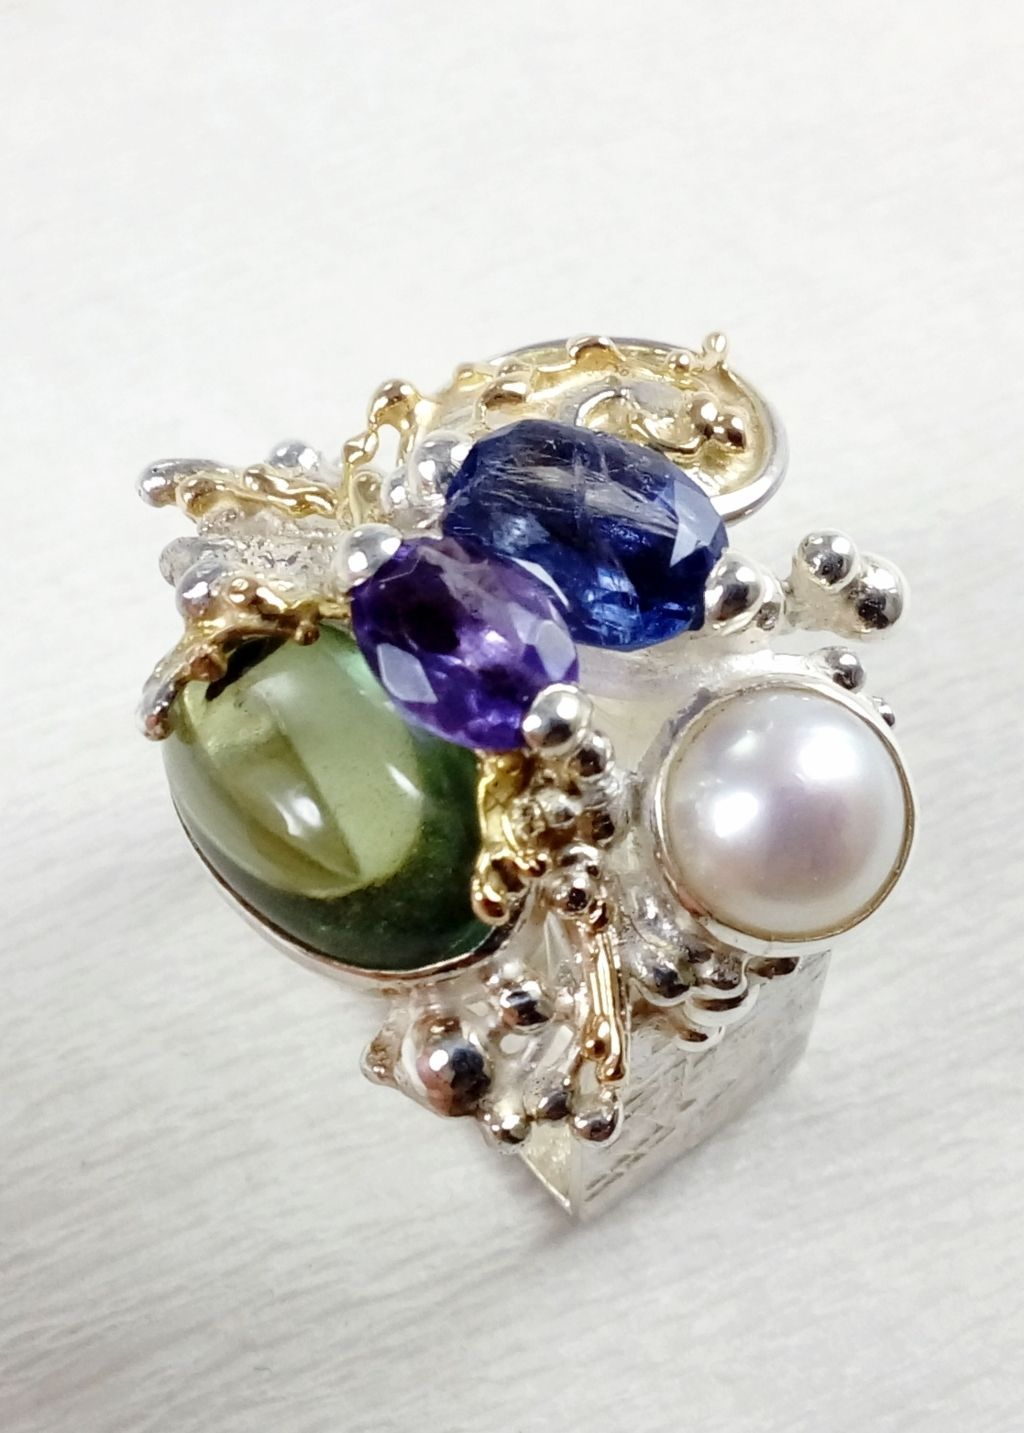 gregory pyra piro square ring 4821, craft gallery jewellery for sale, fine craft gallery handcrafted ring for sale, sterling silver and 14 karat gold ring, ring with amethyst, fluorite, iolite and pearl, one of a kind handcrafted ring, original handcrafted jewellery